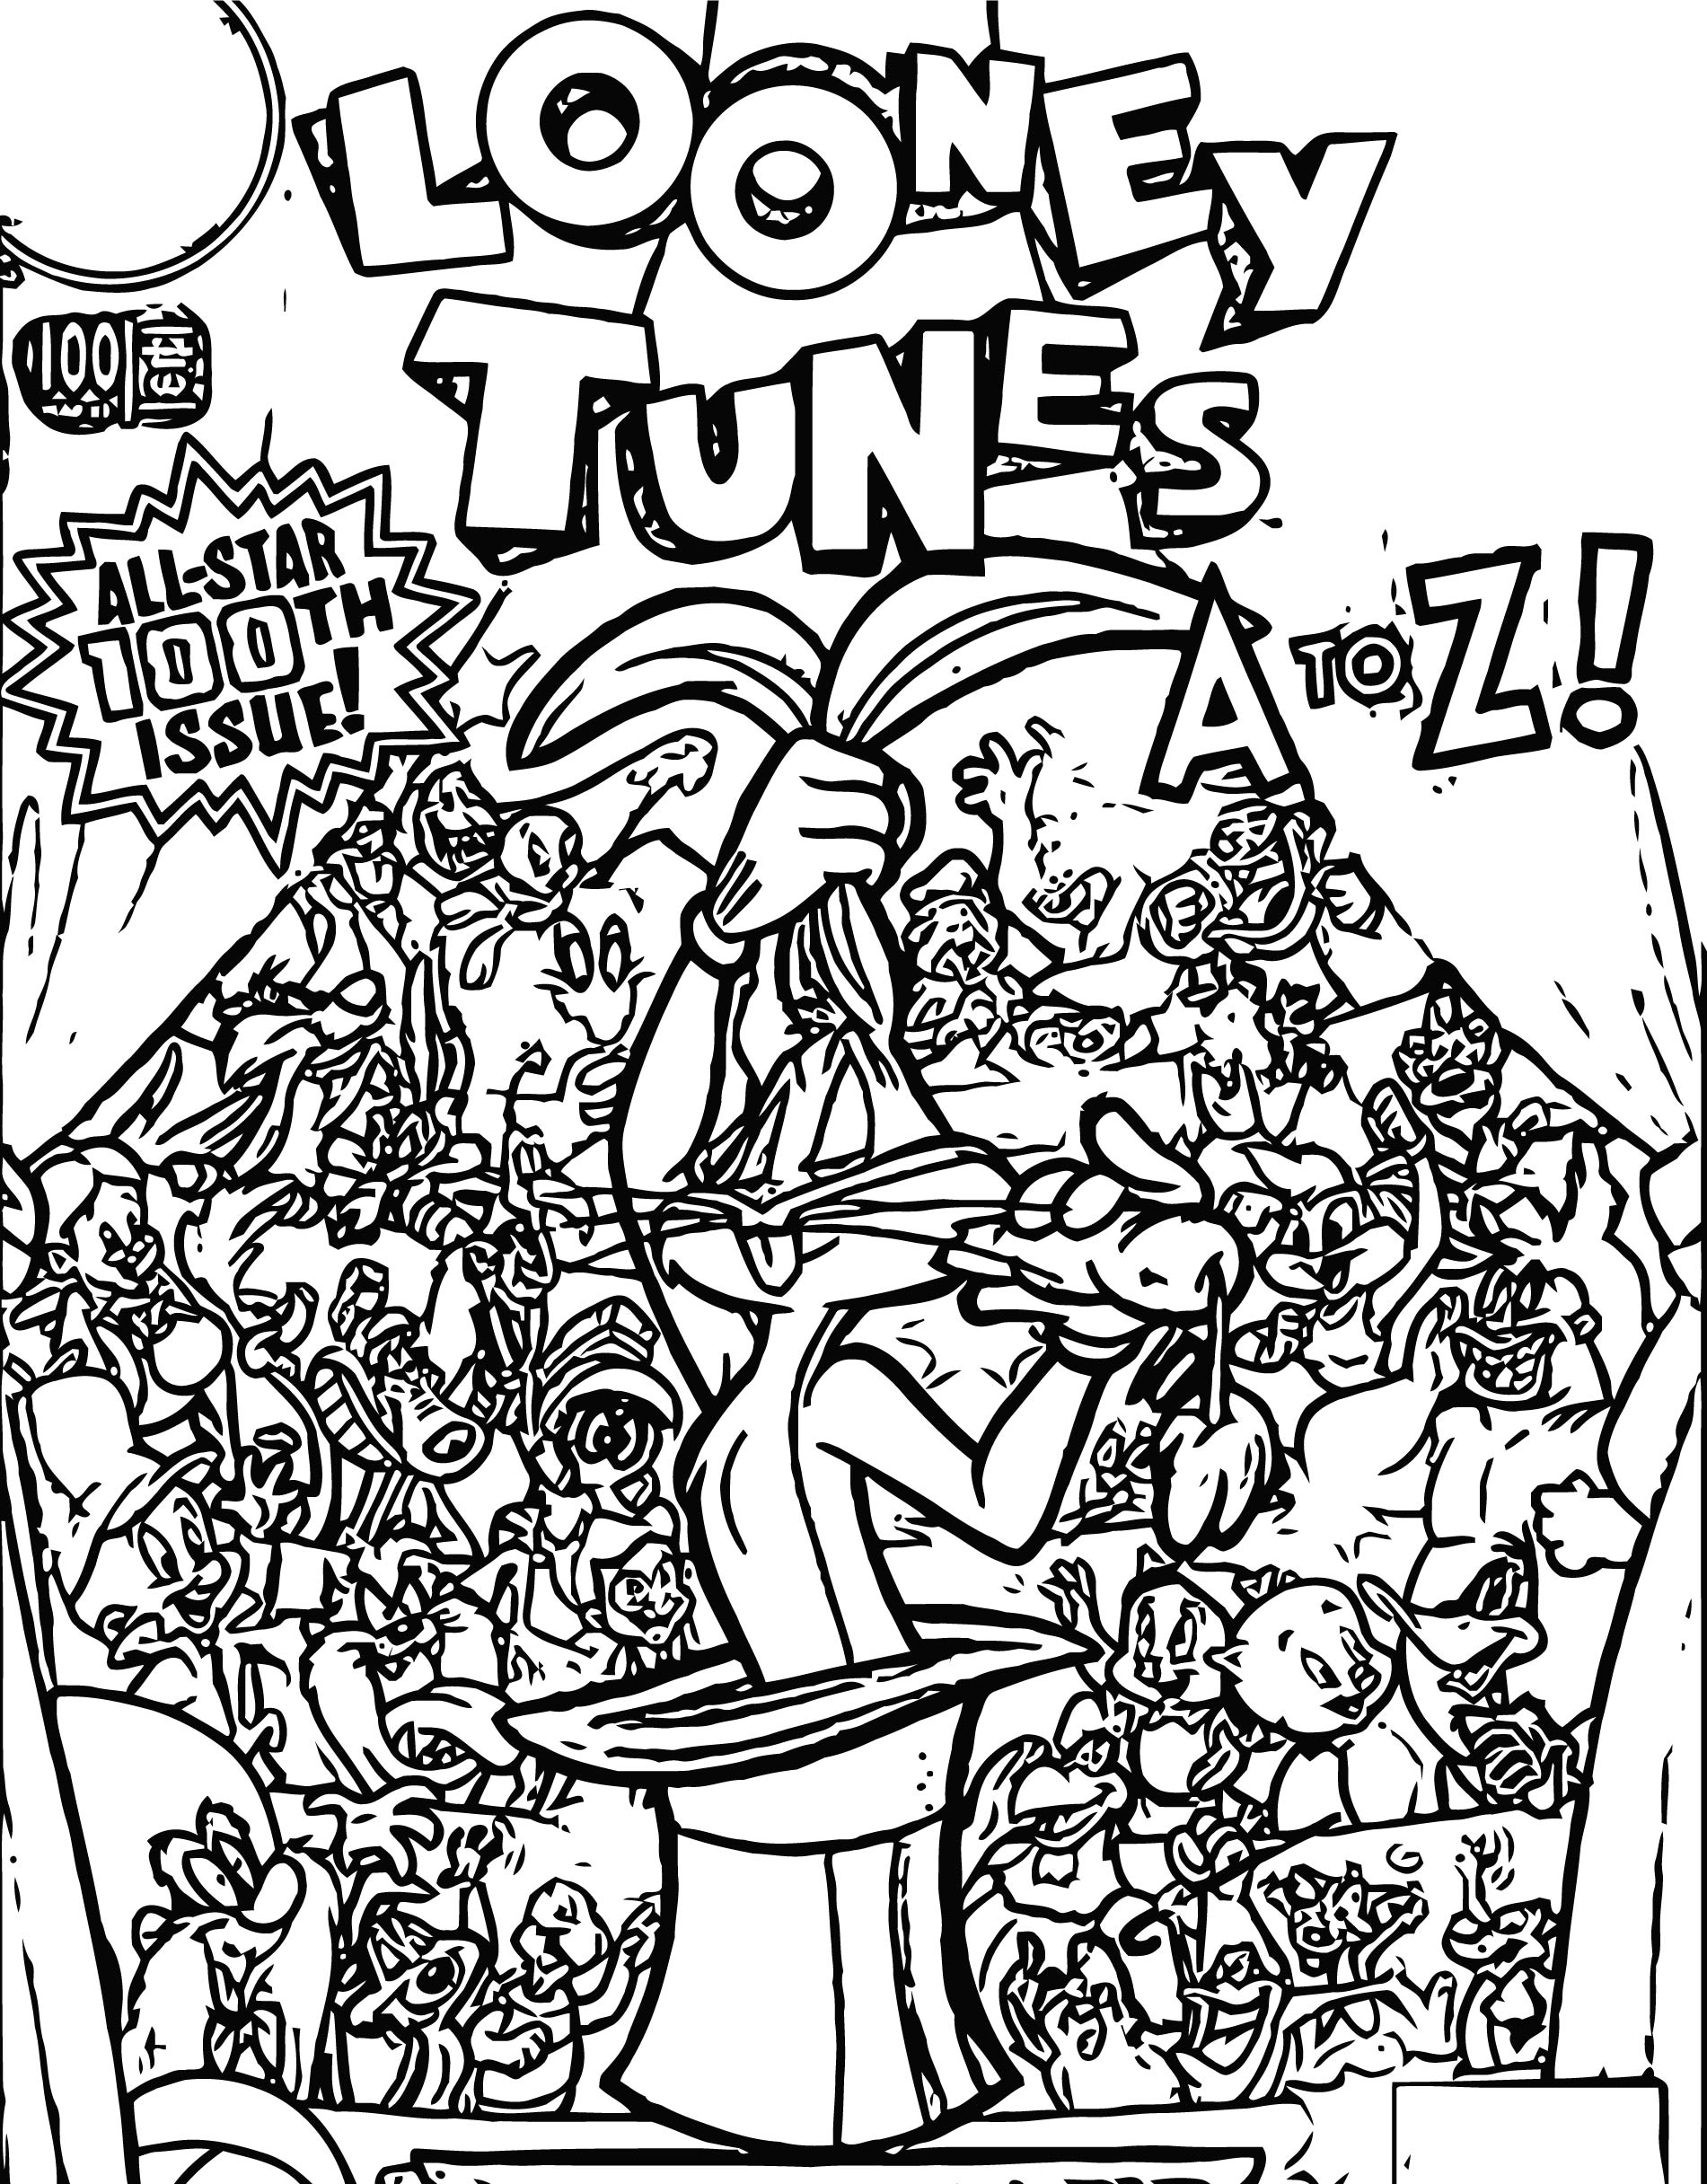 Looney Tunes Vol 1 100 The Looney Tunes Show Coloring Page